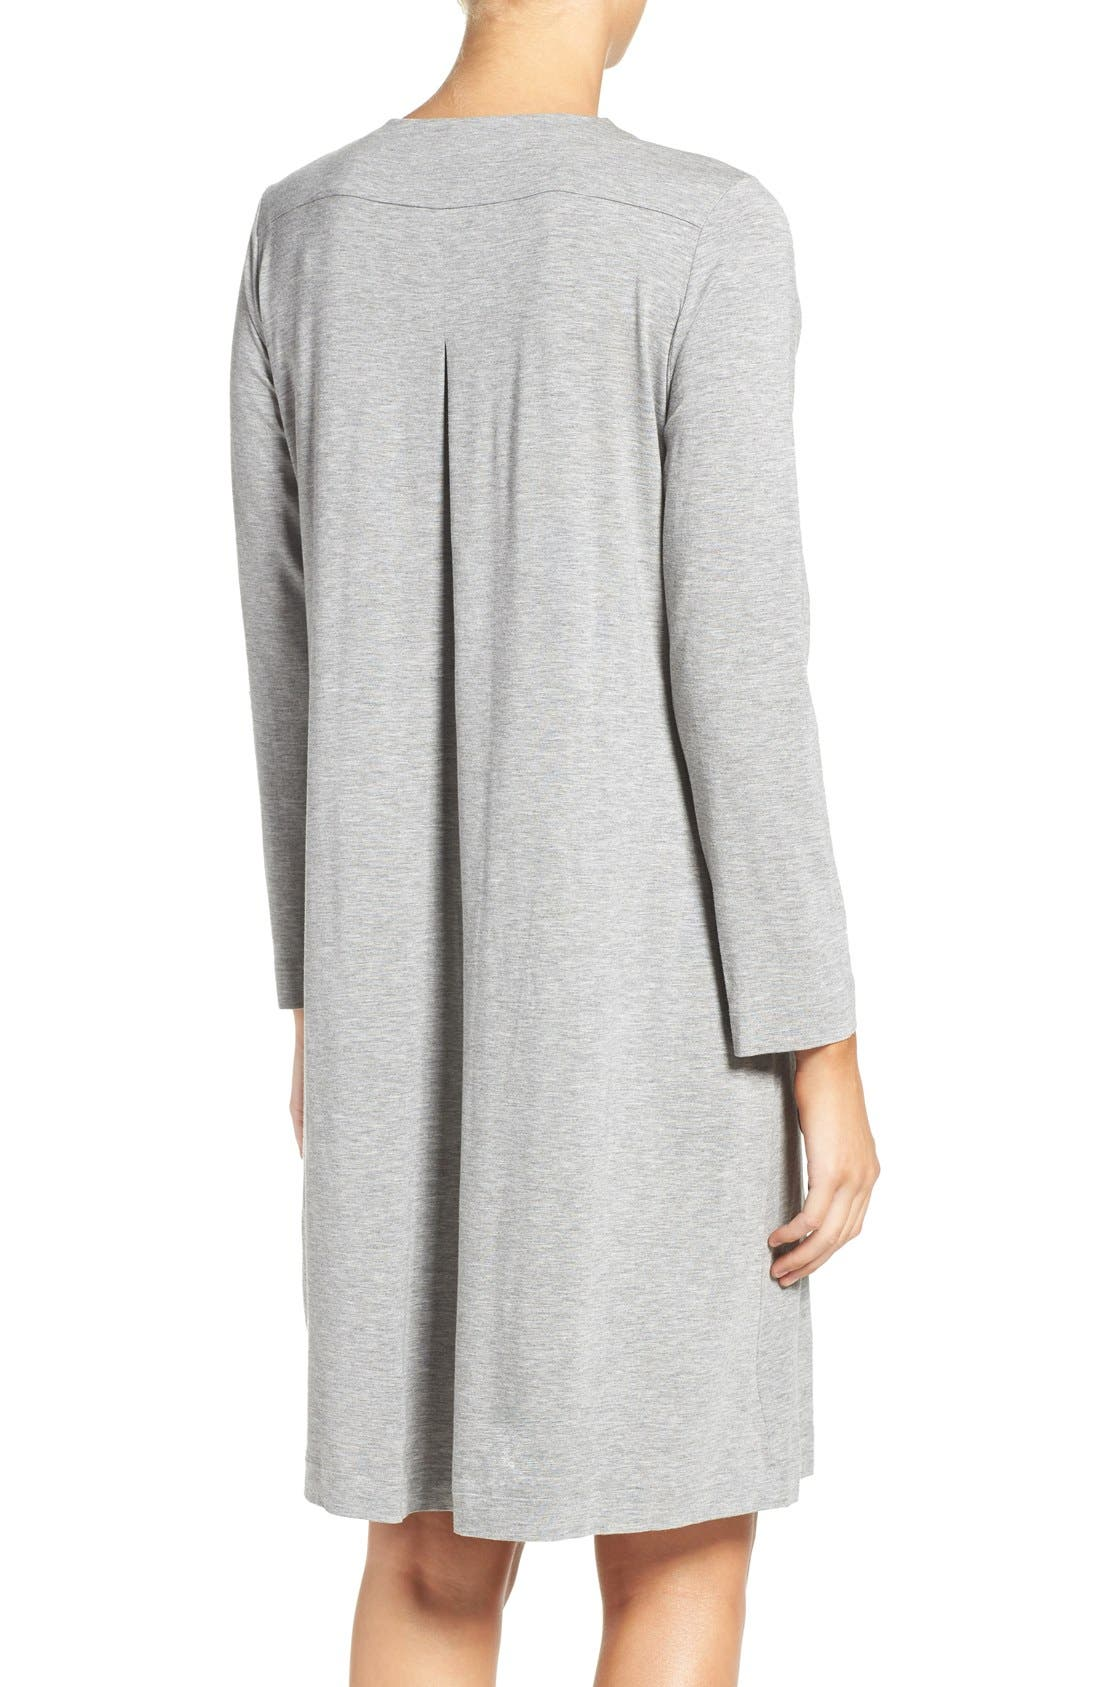 Long Sleeve Knit Nightgown,                             Alternate thumbnail 2, color,                             Grey Melange 958